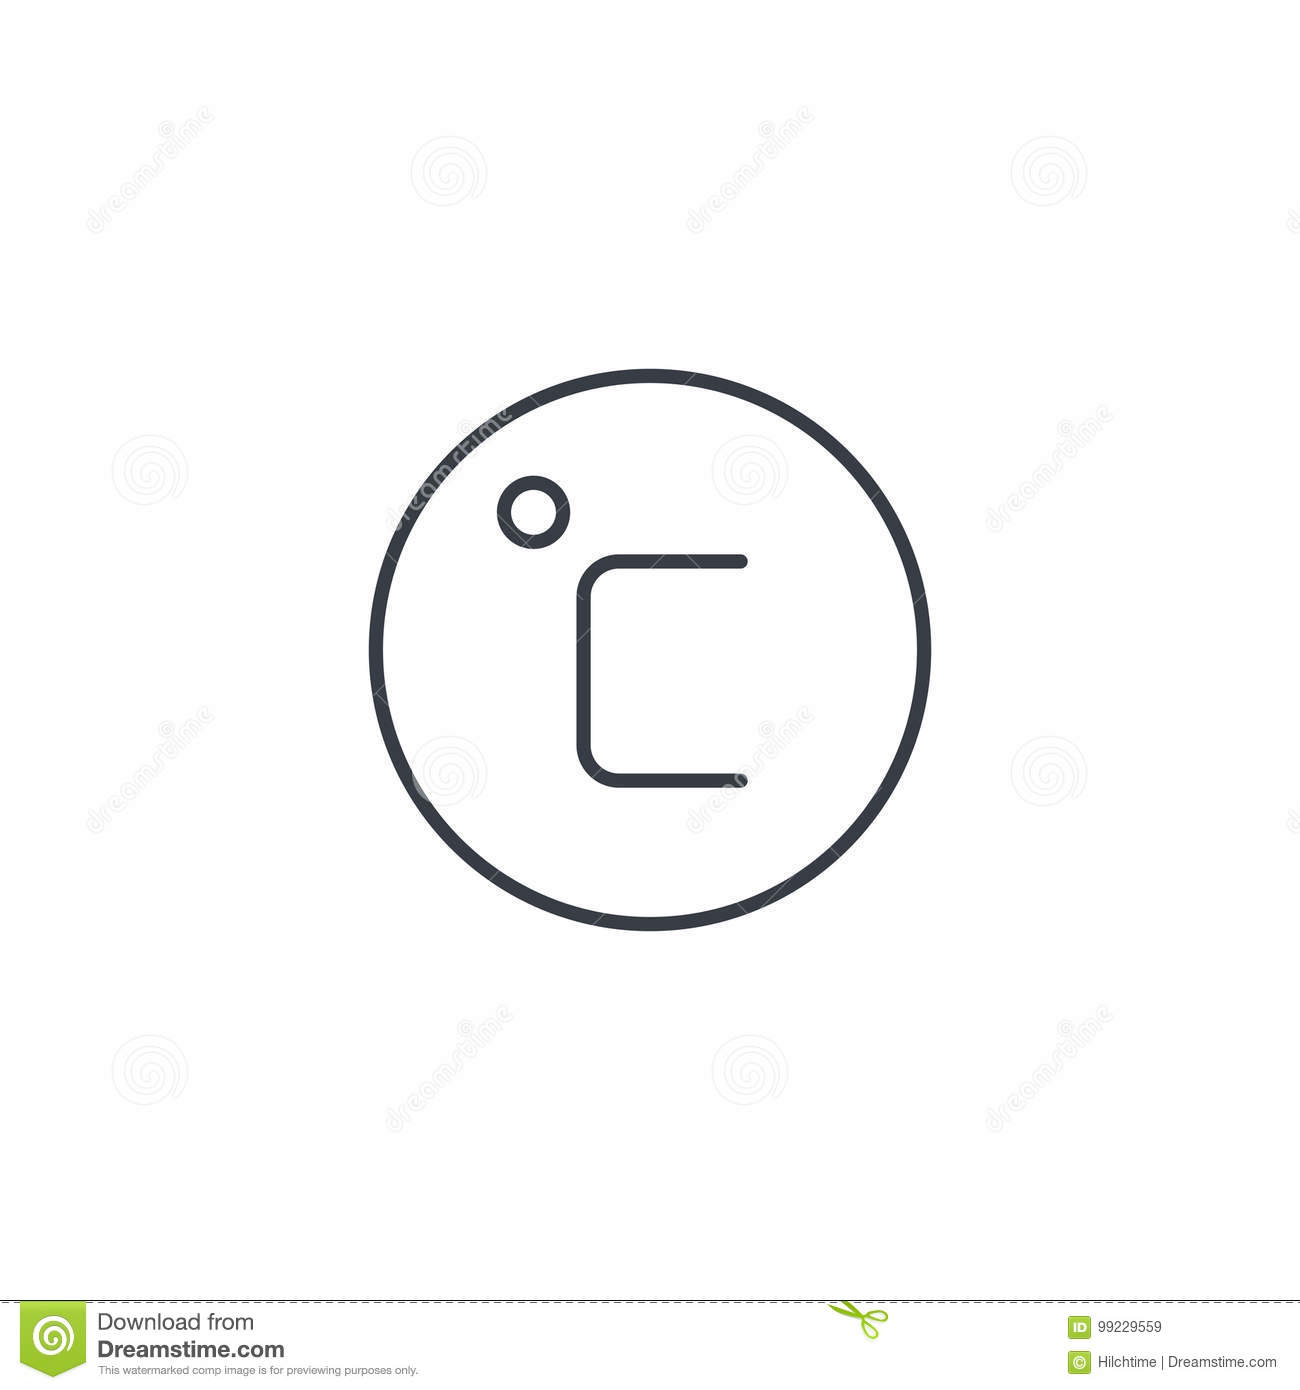 Degree celsius thin line icon linear vector symbol stock vector degree celsius thin line icon linear vector symbol biocorpaavc Choice Image